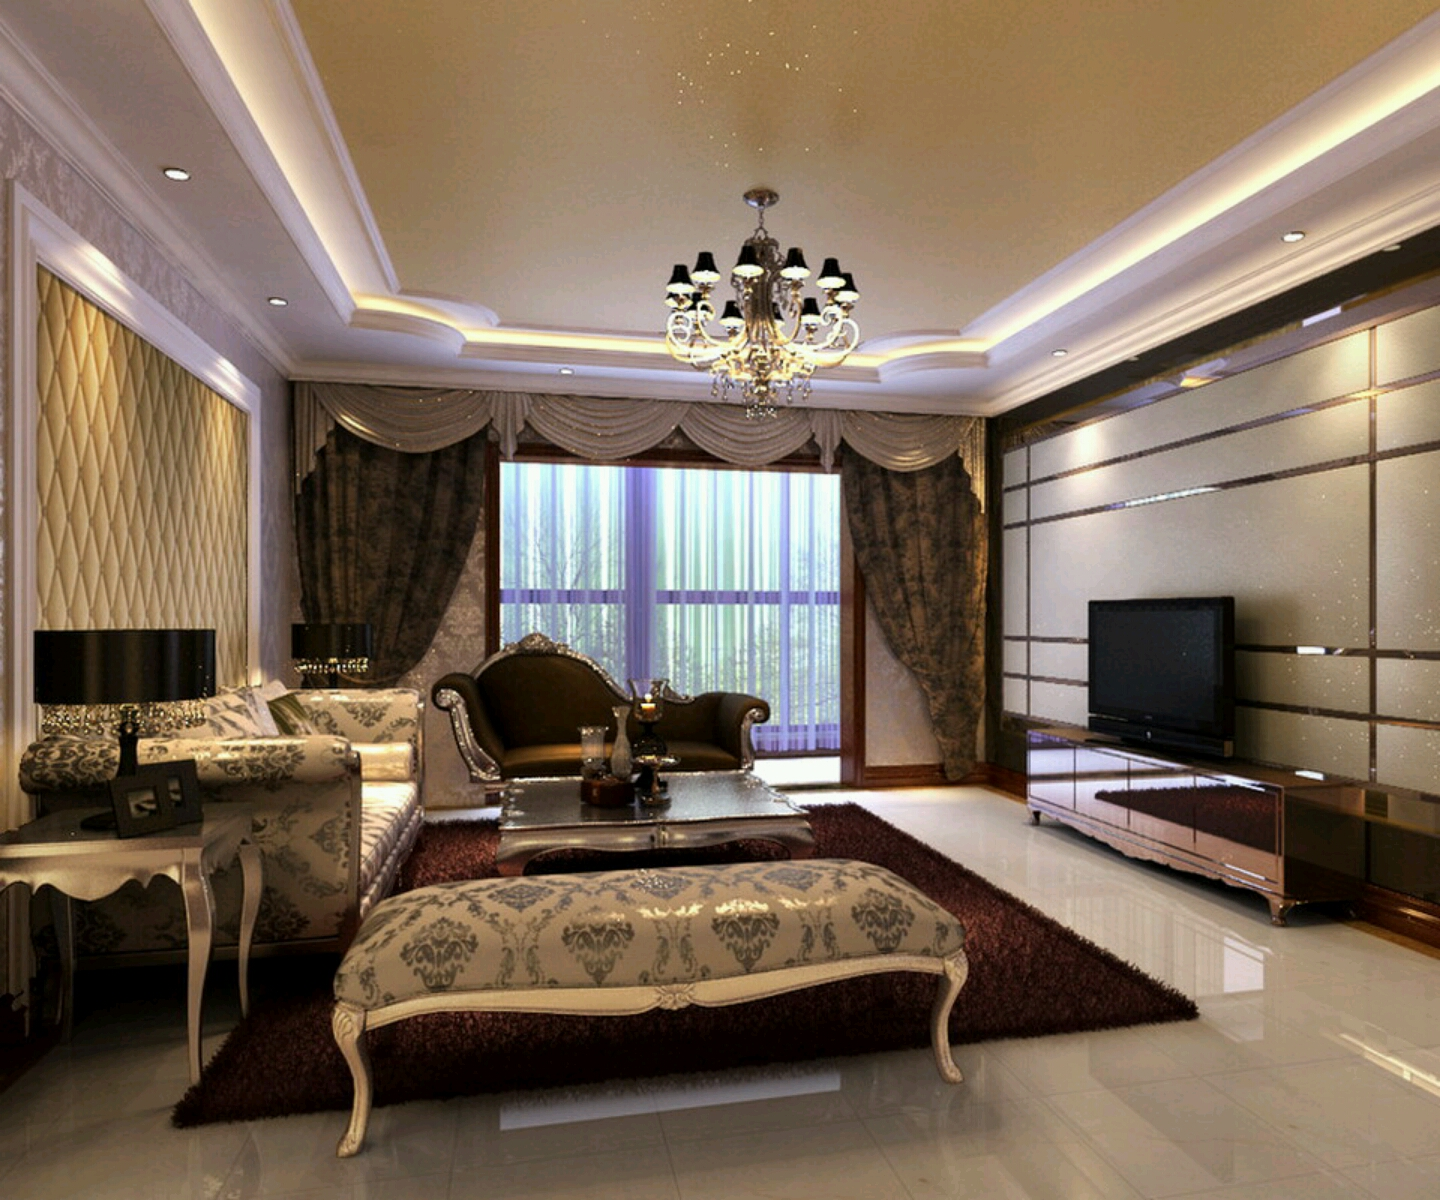 New home designs latest luxury homes interior decoration for Interior living room decoration